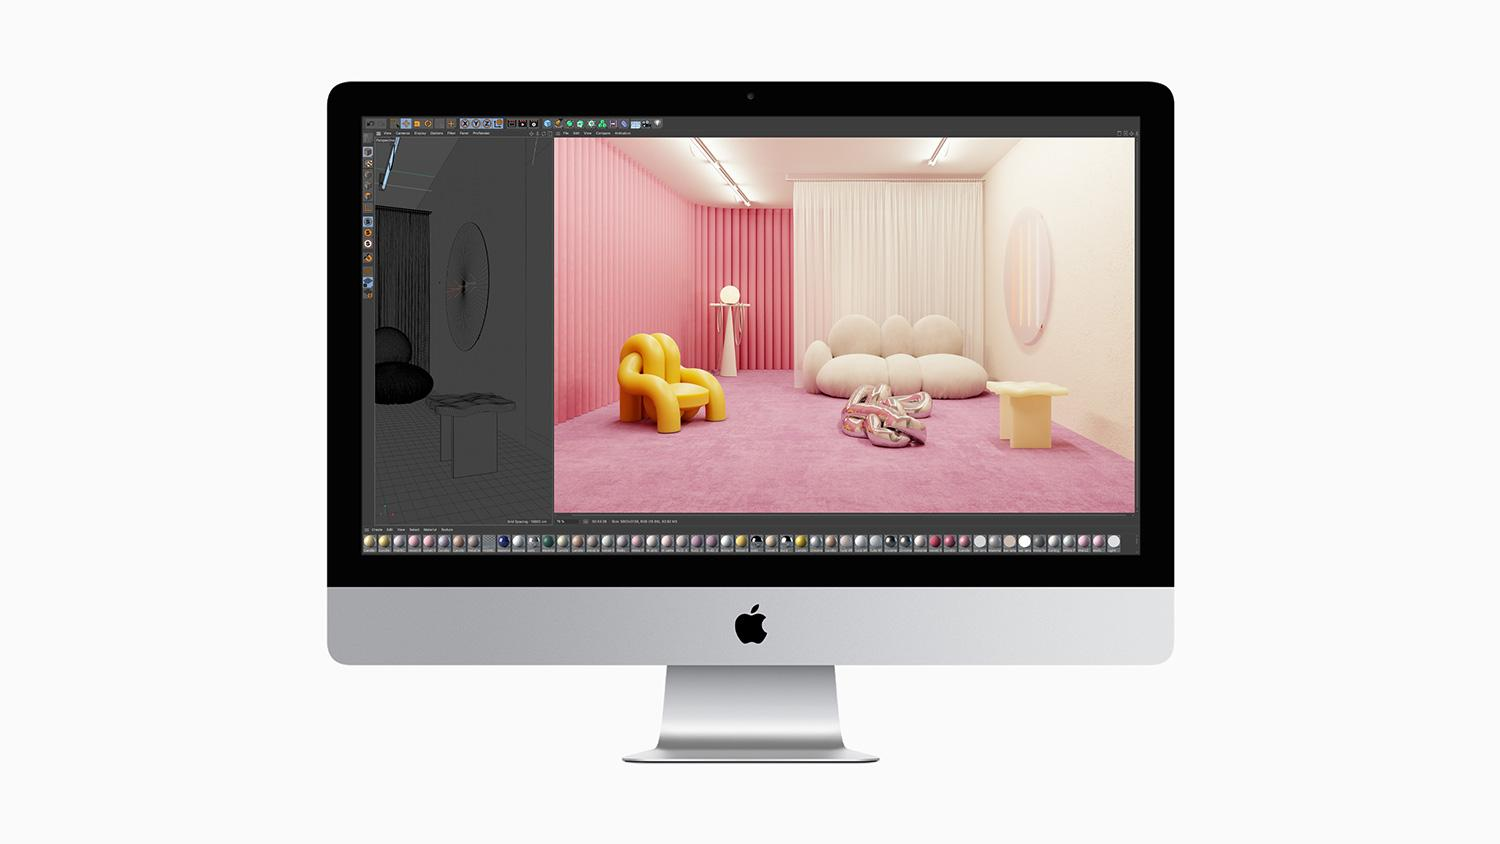 Apple updates the 27-inch iMac for 2020 with 10th-gen chips and a new screen